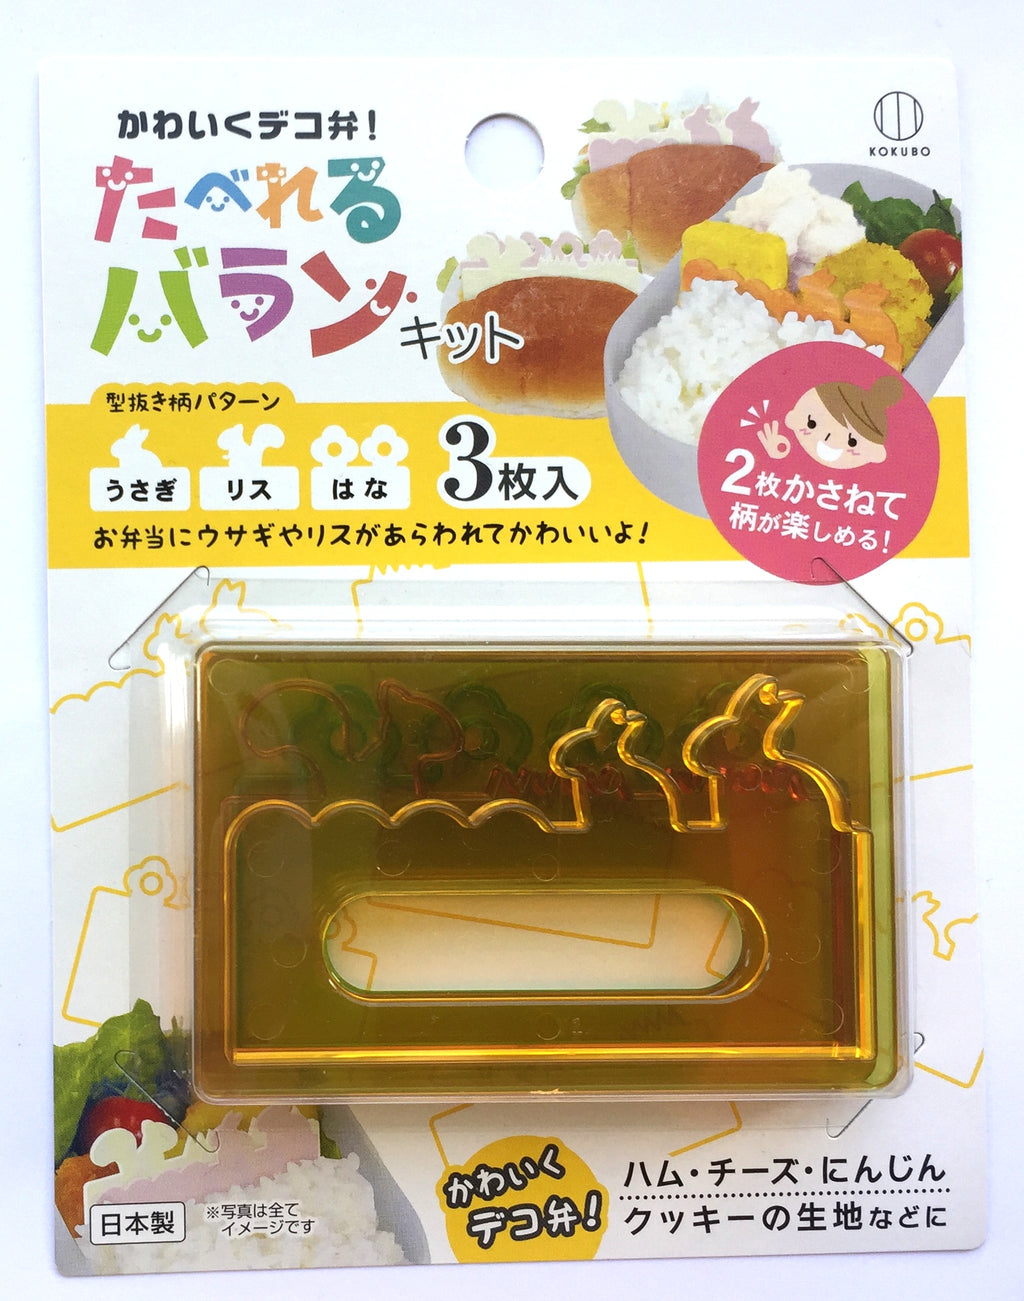 Baran Stencils Make your own baran for bento lunches